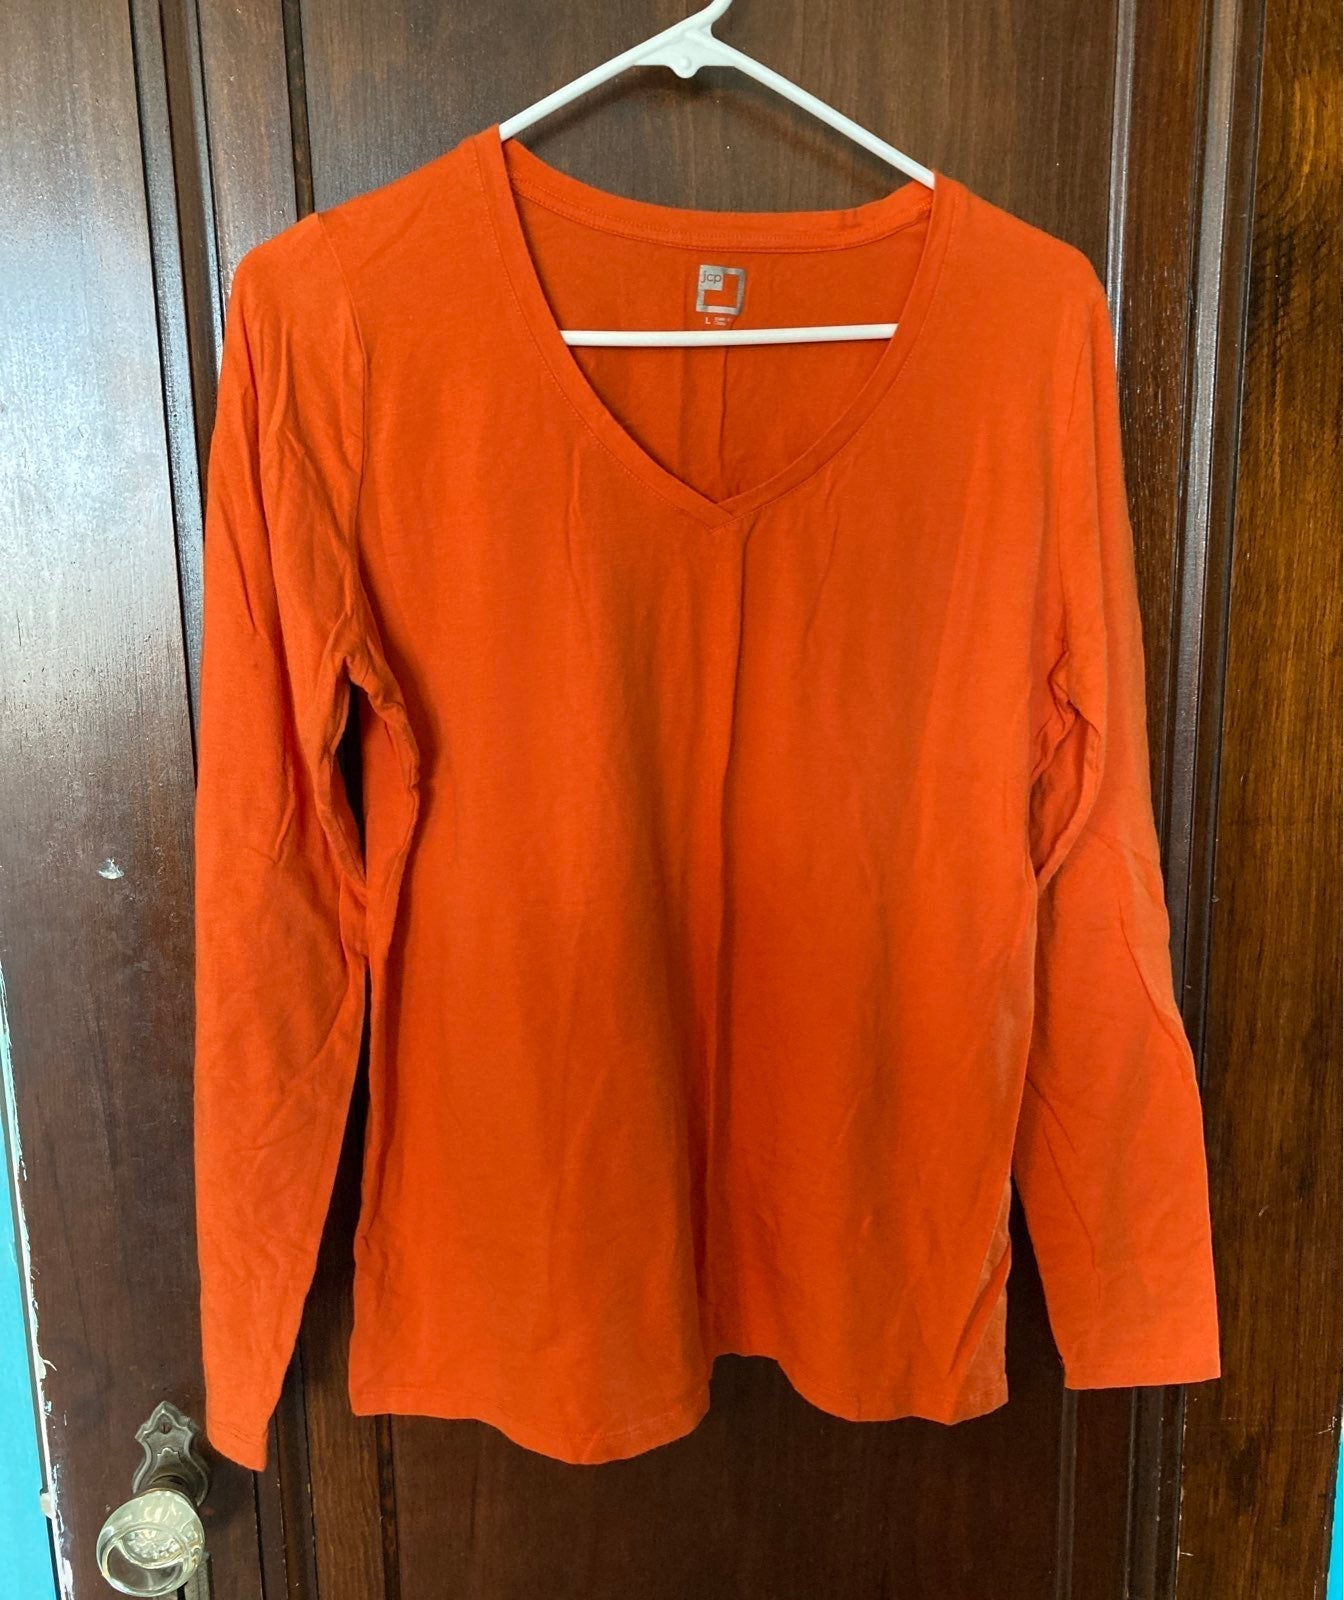 Long Sleeve T-Shirt. Size Large